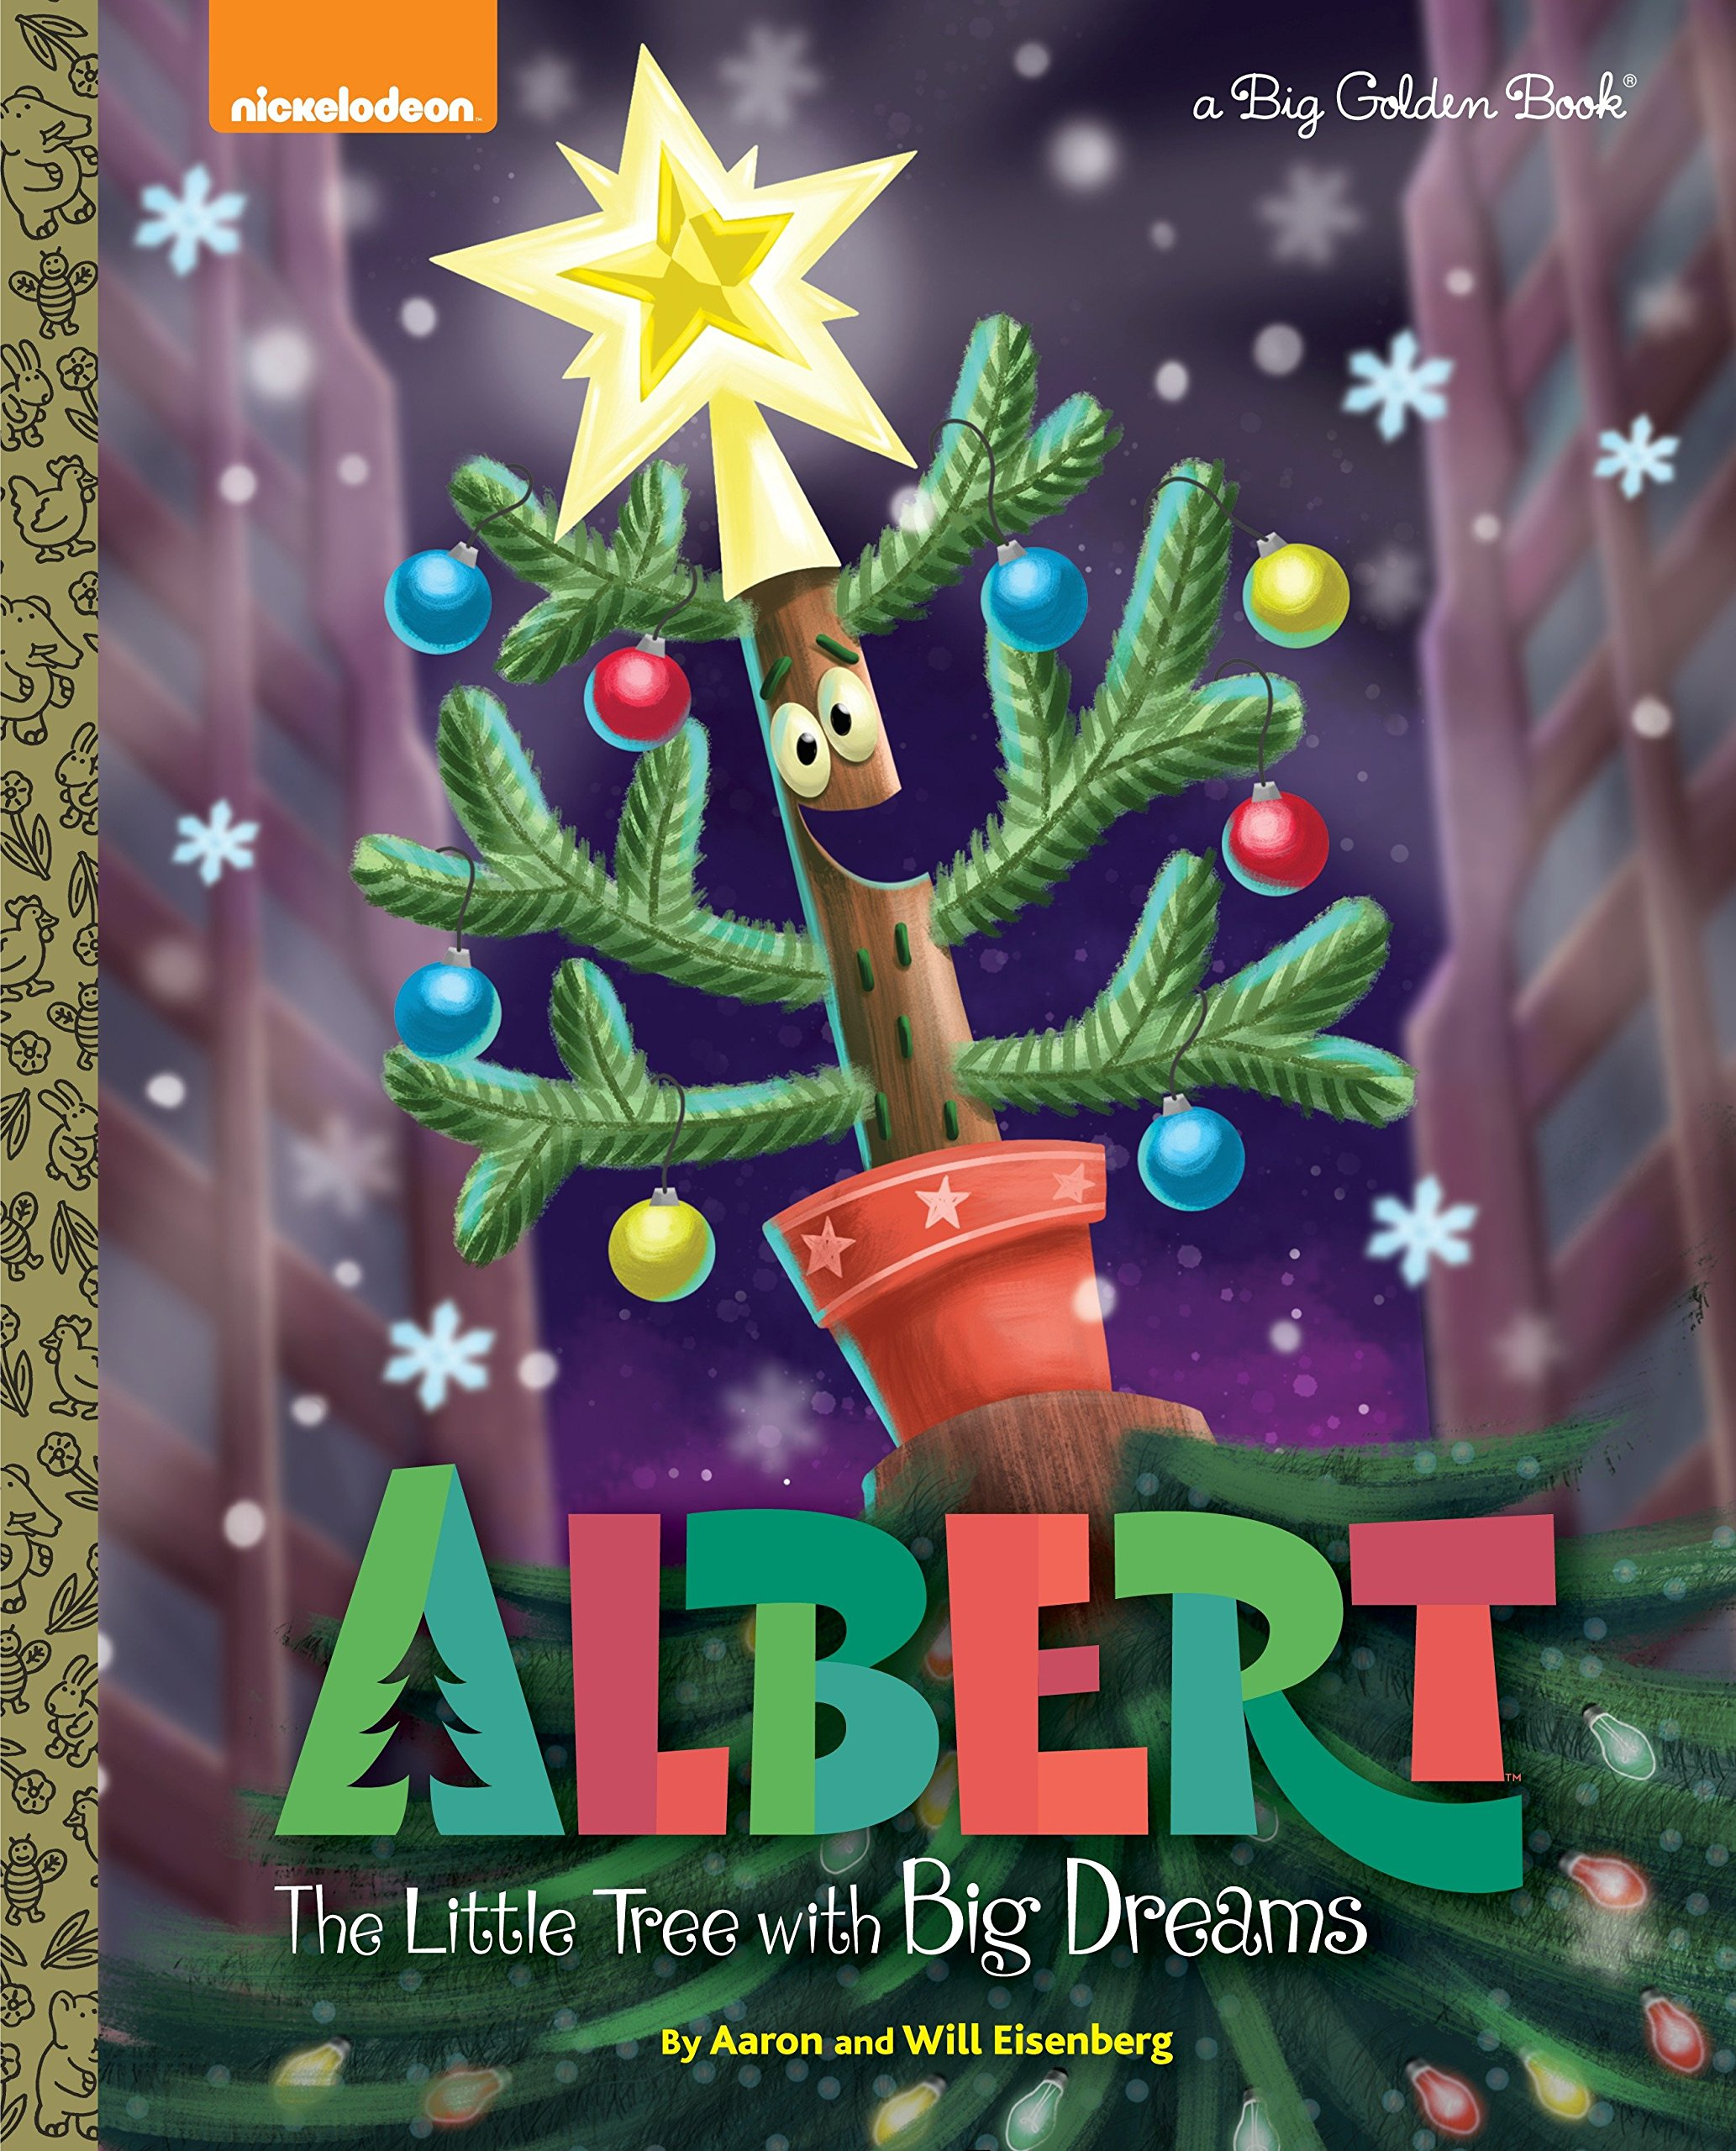 Albert: The Little Tree with Big Dreams (Nickelodeon) (Big Golden Book)